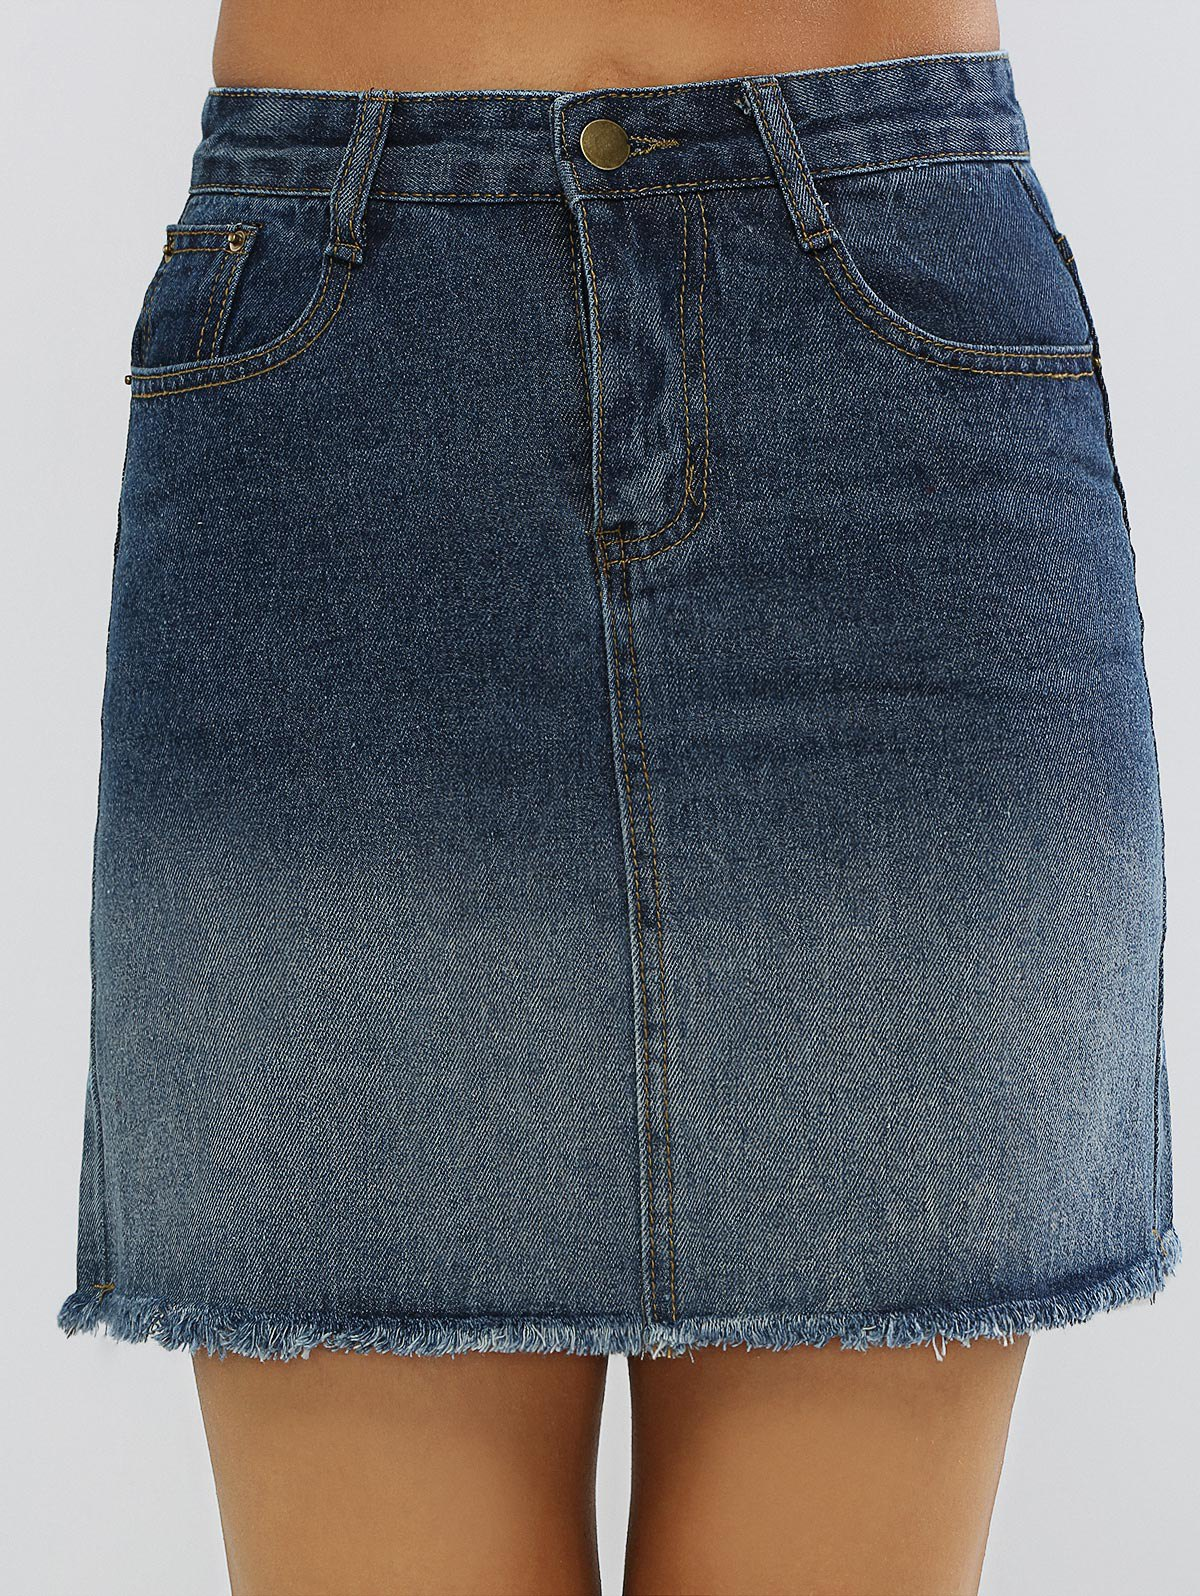 Gradient Color High Waist Denim Skirt